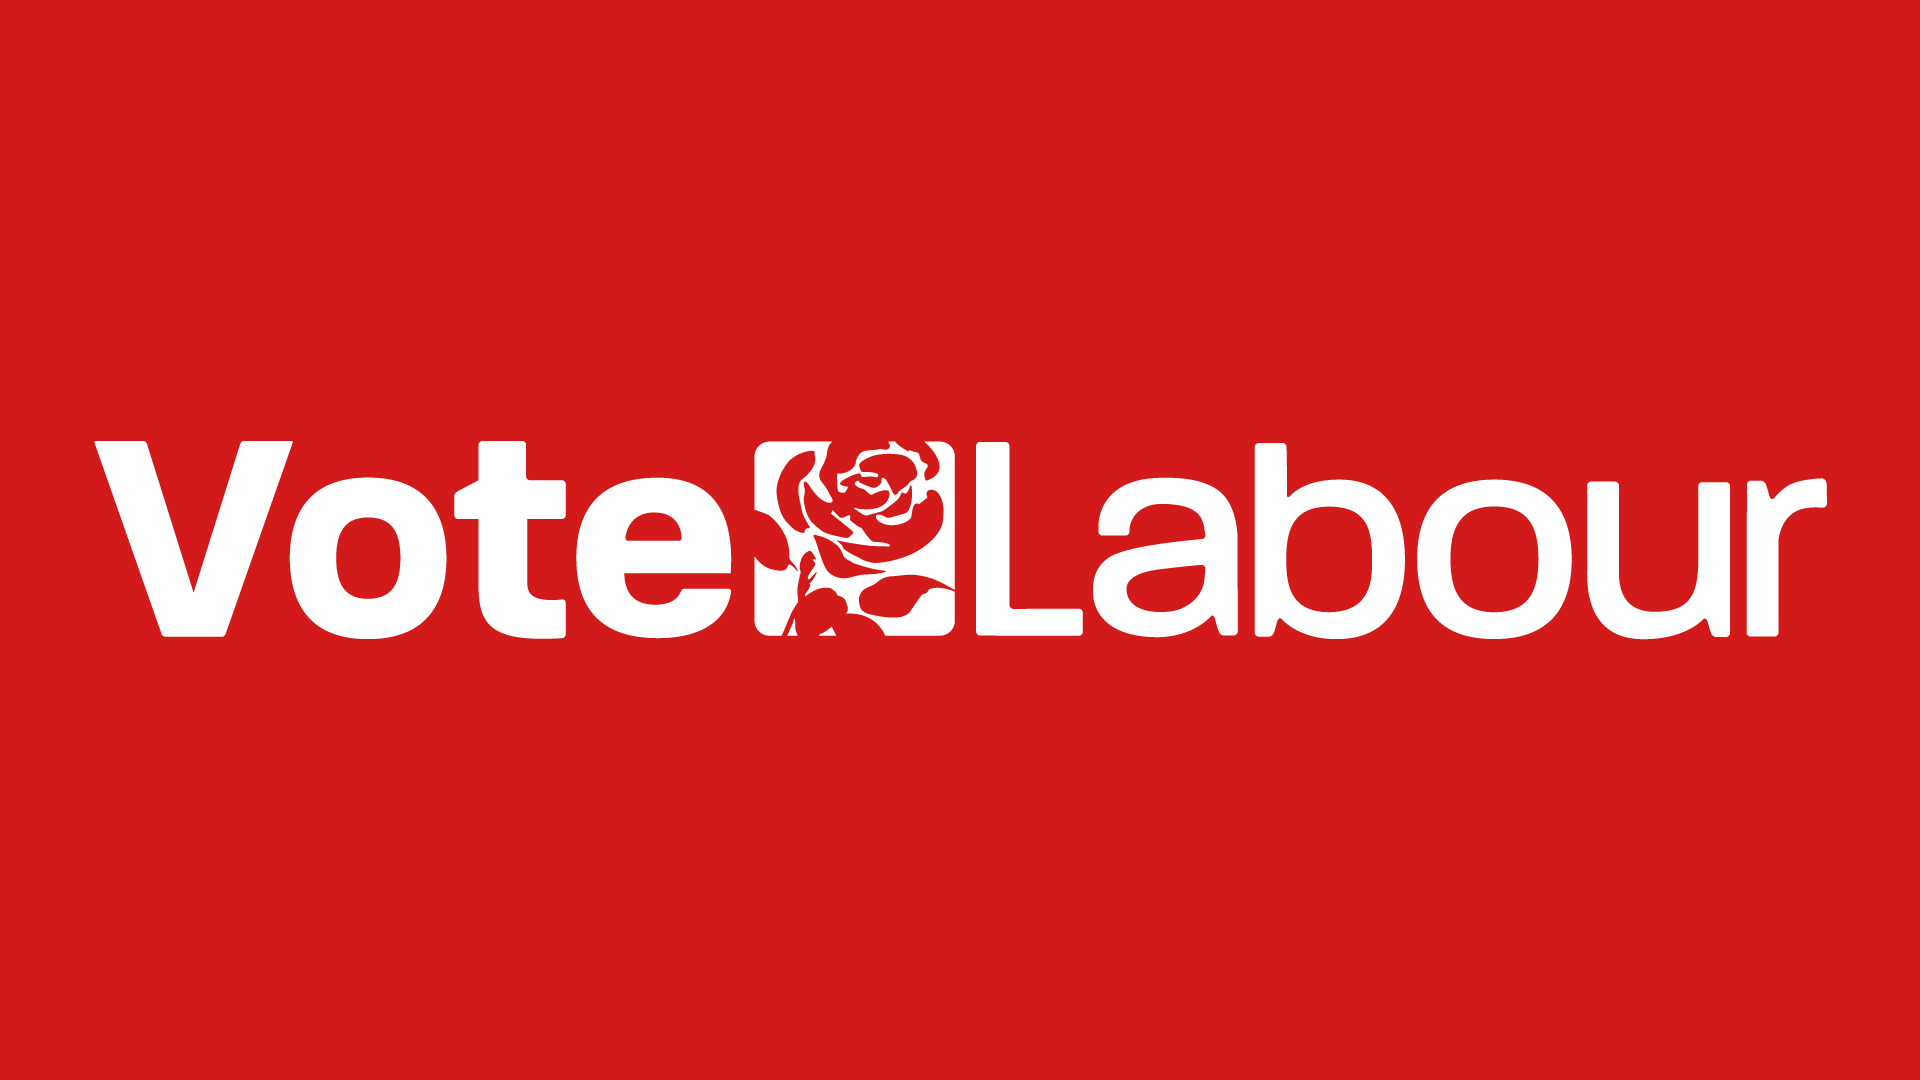 new-vote-labour-desktop.png